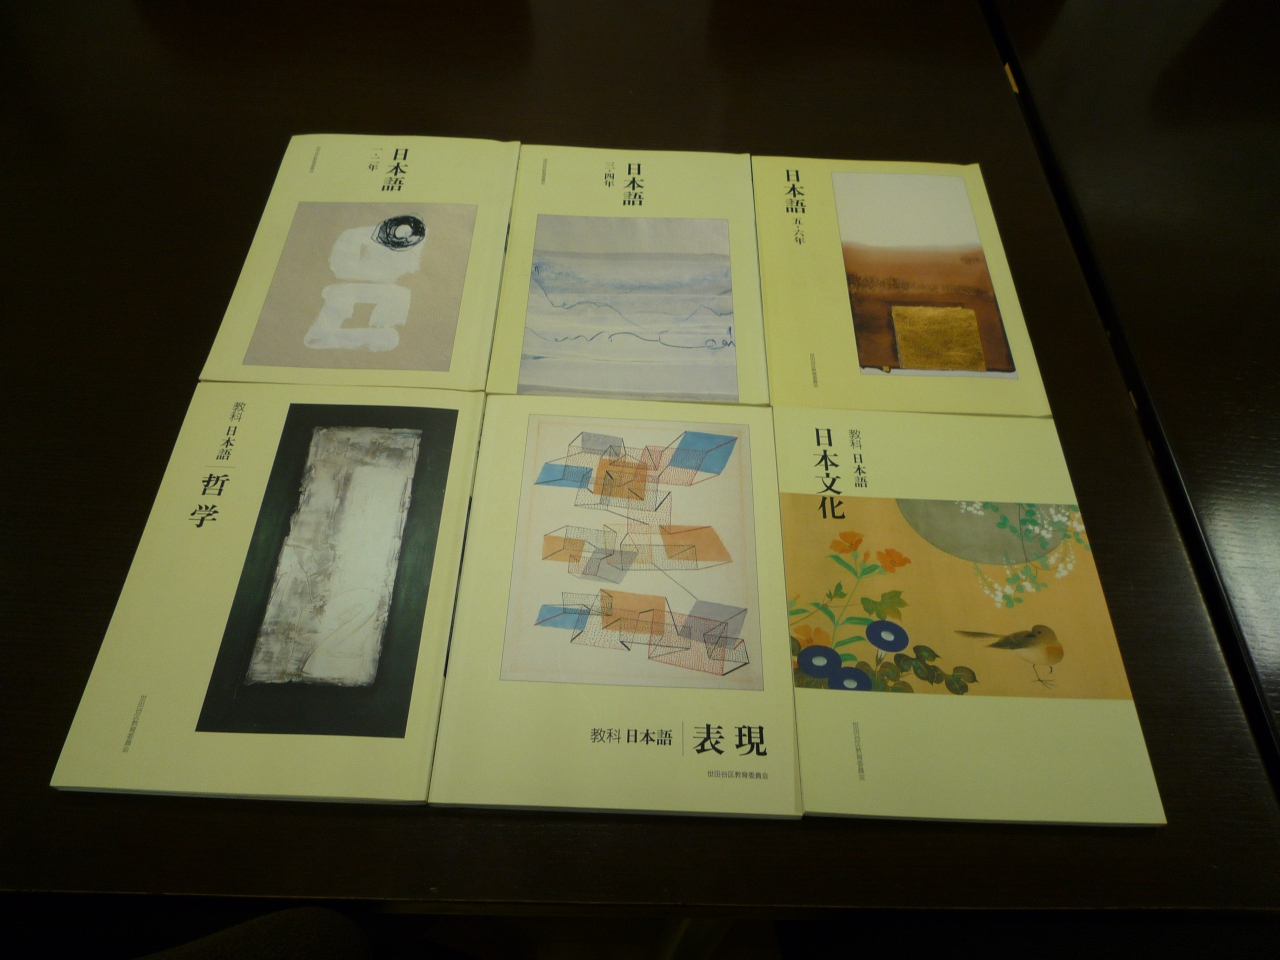 Textbooks of Japanese that are used in Setagaya Ward Elementary Schools